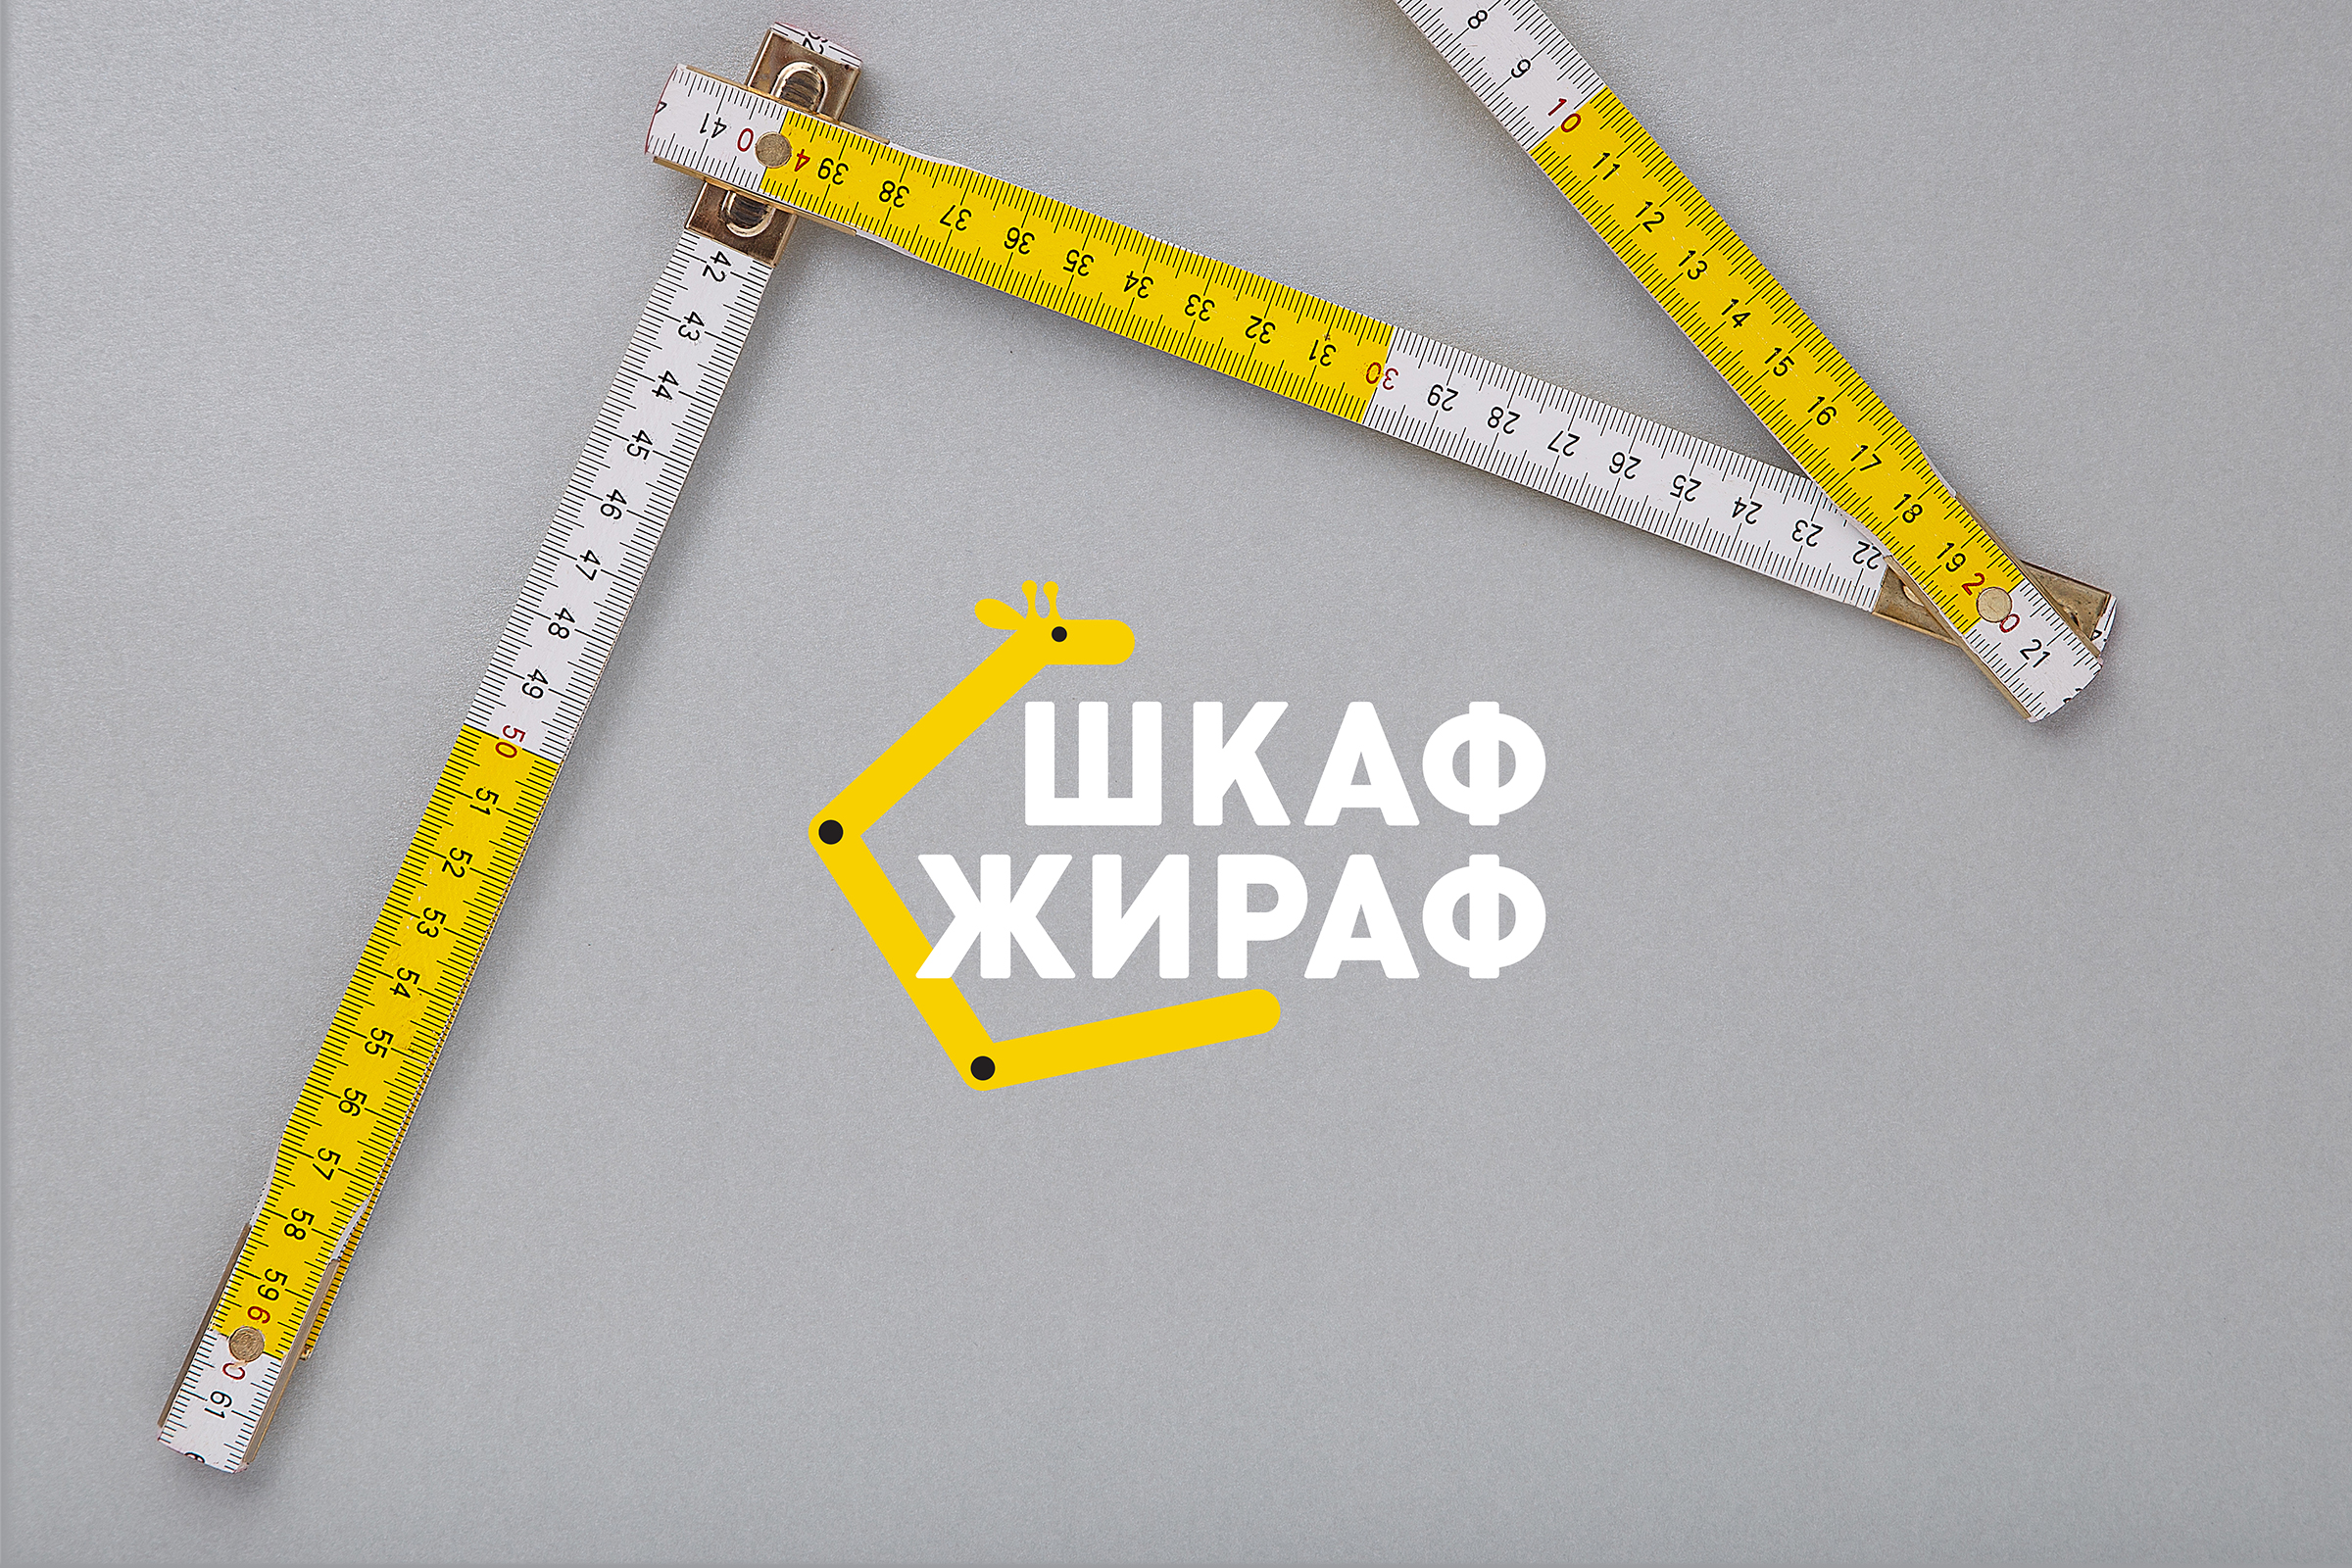 New Giraffe Brand Character Development for 'Wardrobe', a Construction Product Range / World Brand and Packaging Design Society